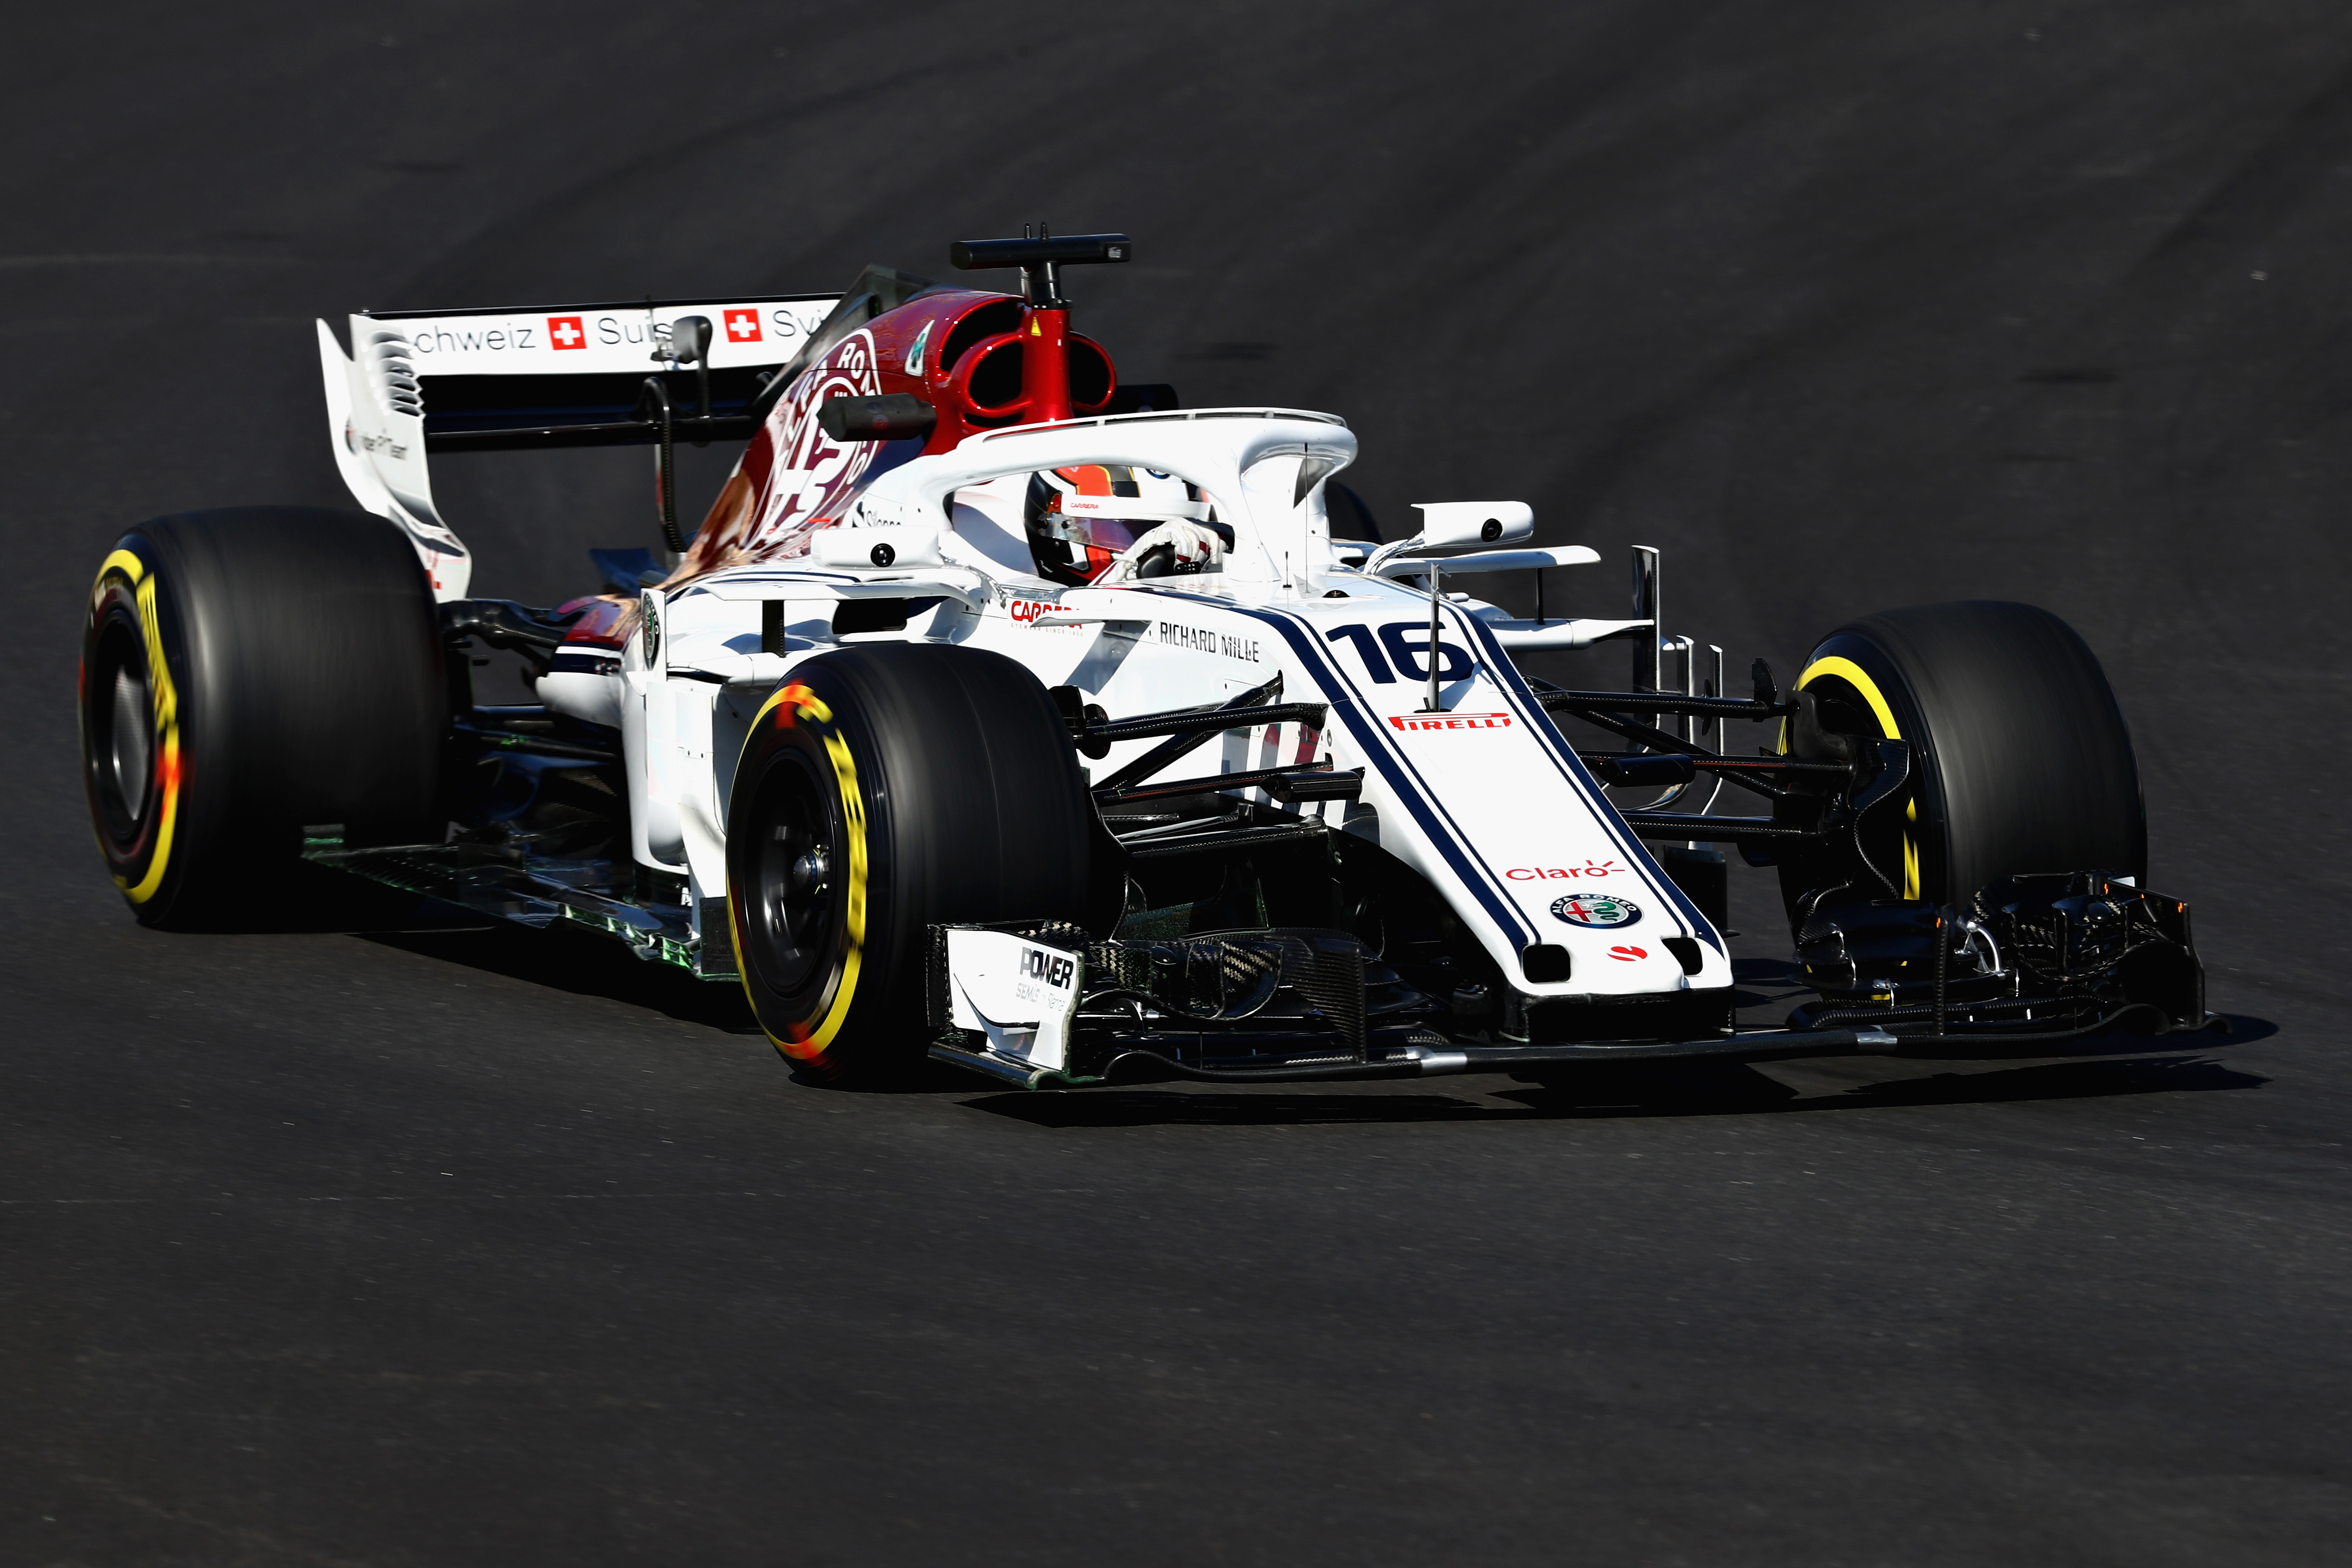 f1 2018 season: what to expect, driver changes, schedule, how to